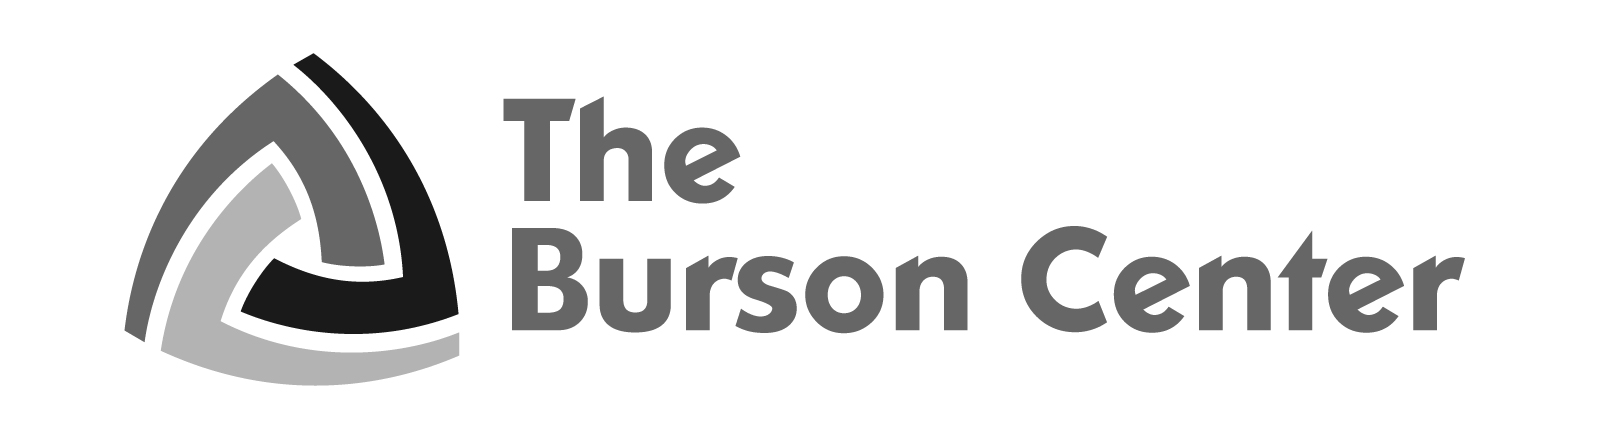 Burson Center